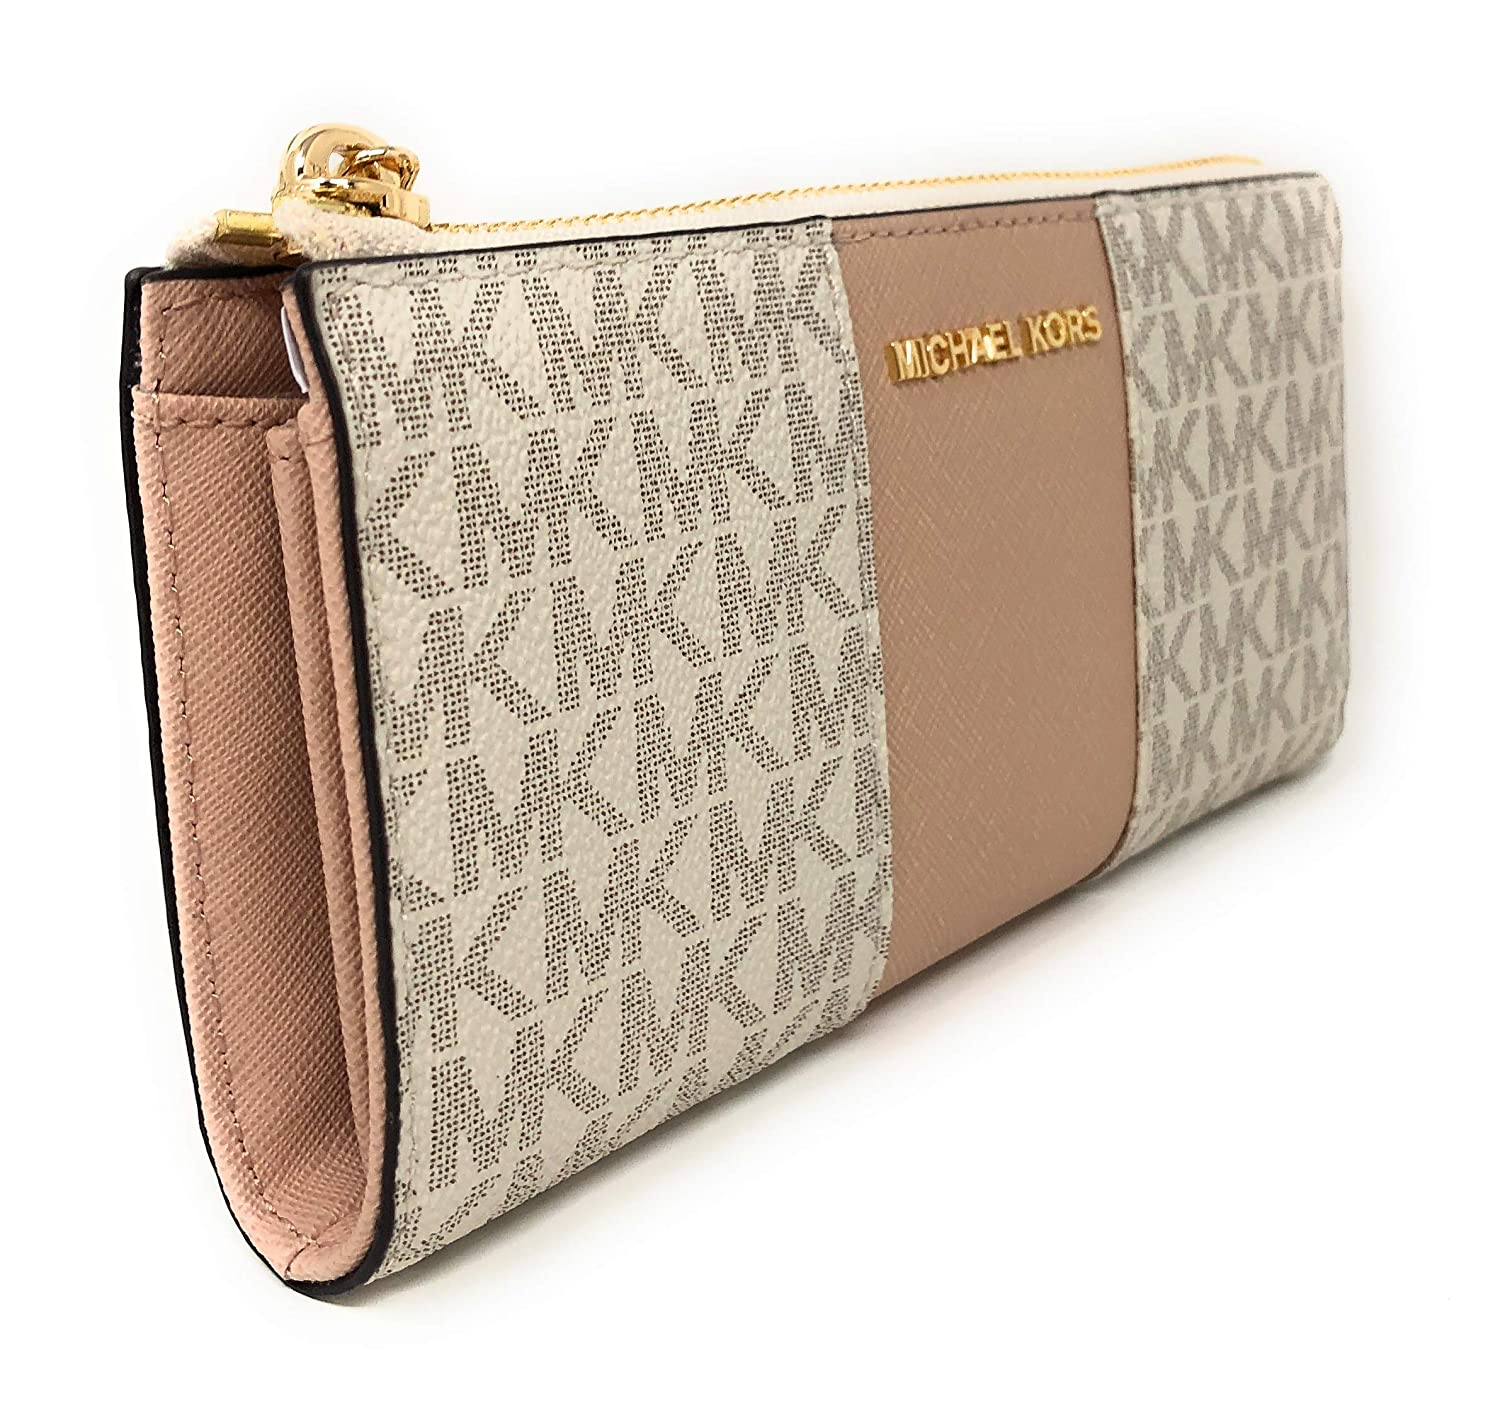 6b4fde6bceca2b Amazon.com: Michael Kors PVC Signature Center Stripe JST LG Three Quarter Zip  Wallet in Fawn/Ballet: Gaby's Bags